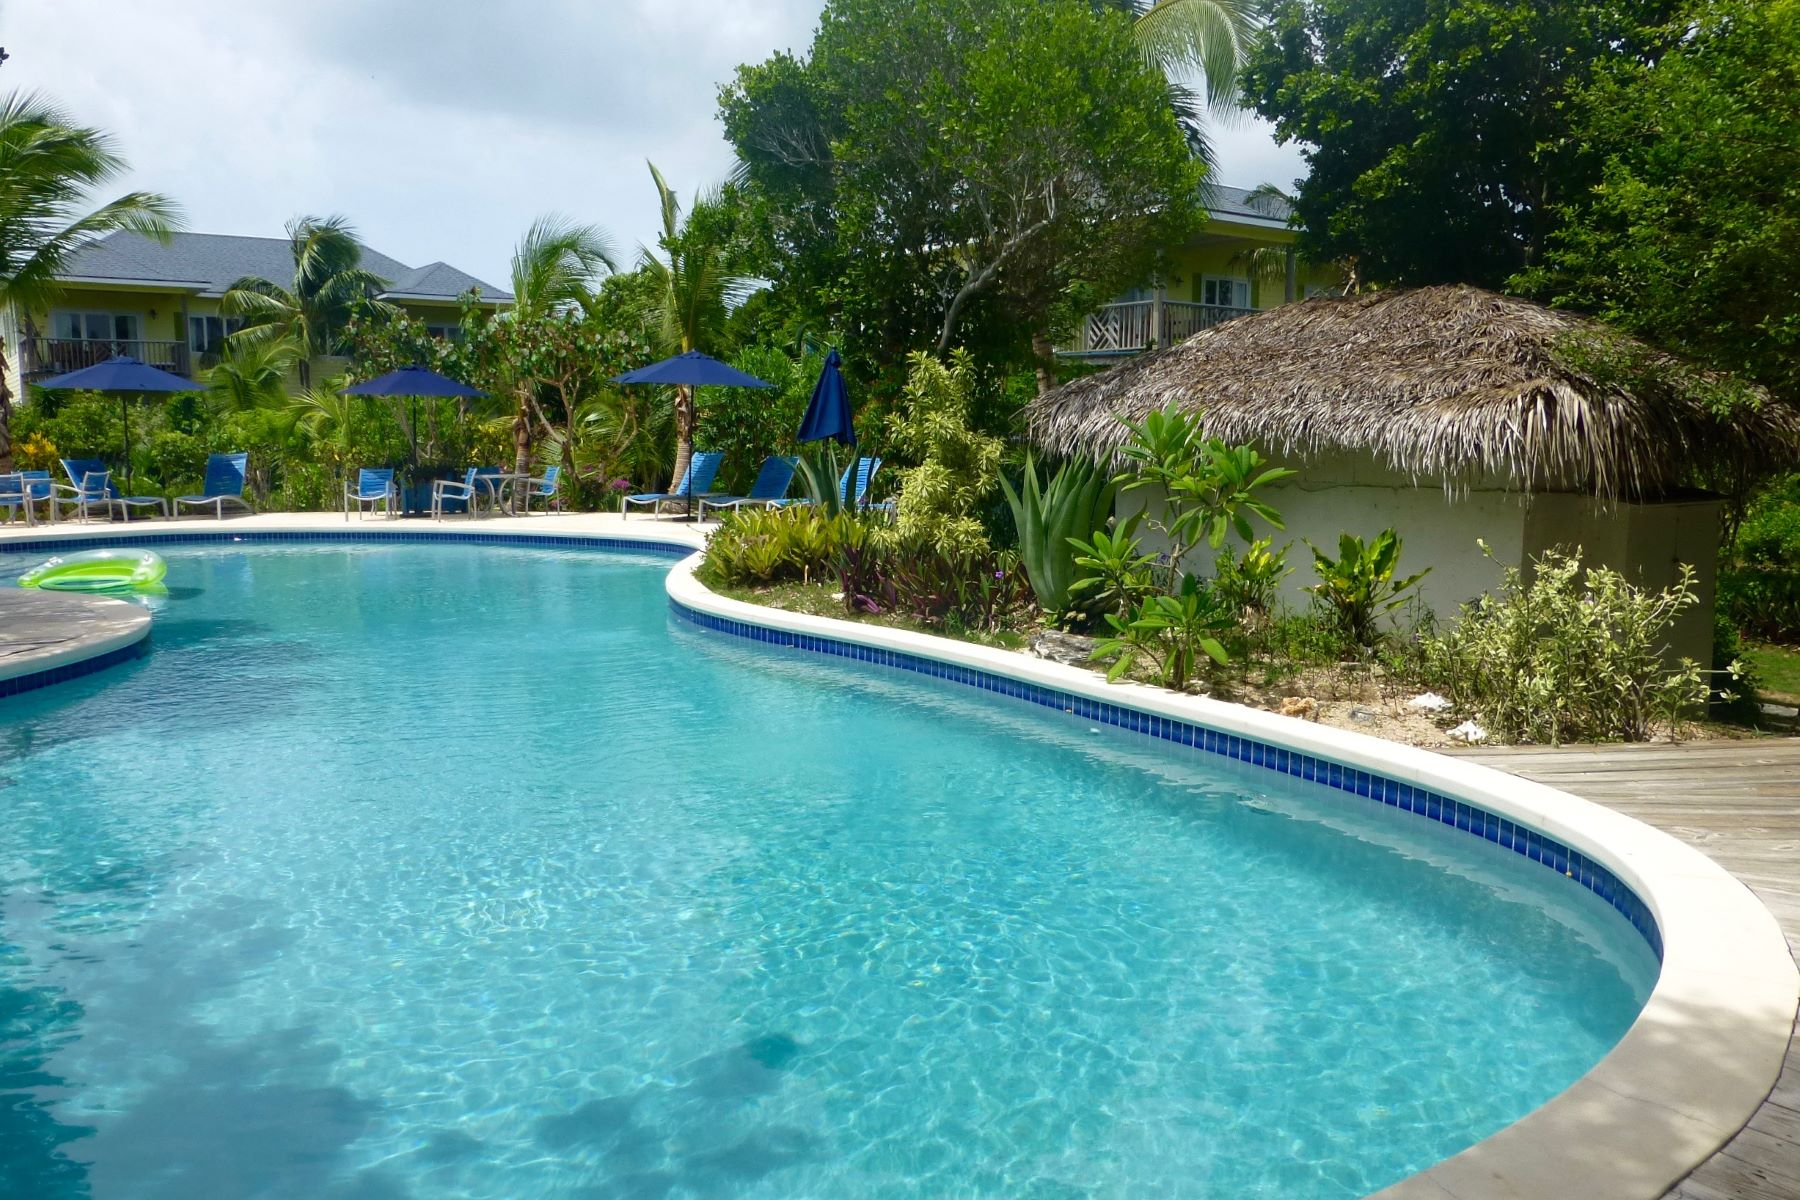 Condominium for Sale at Unit 422 Pineapple Fields Banks Road, Governors Harbour, Eleuthera Bahamas